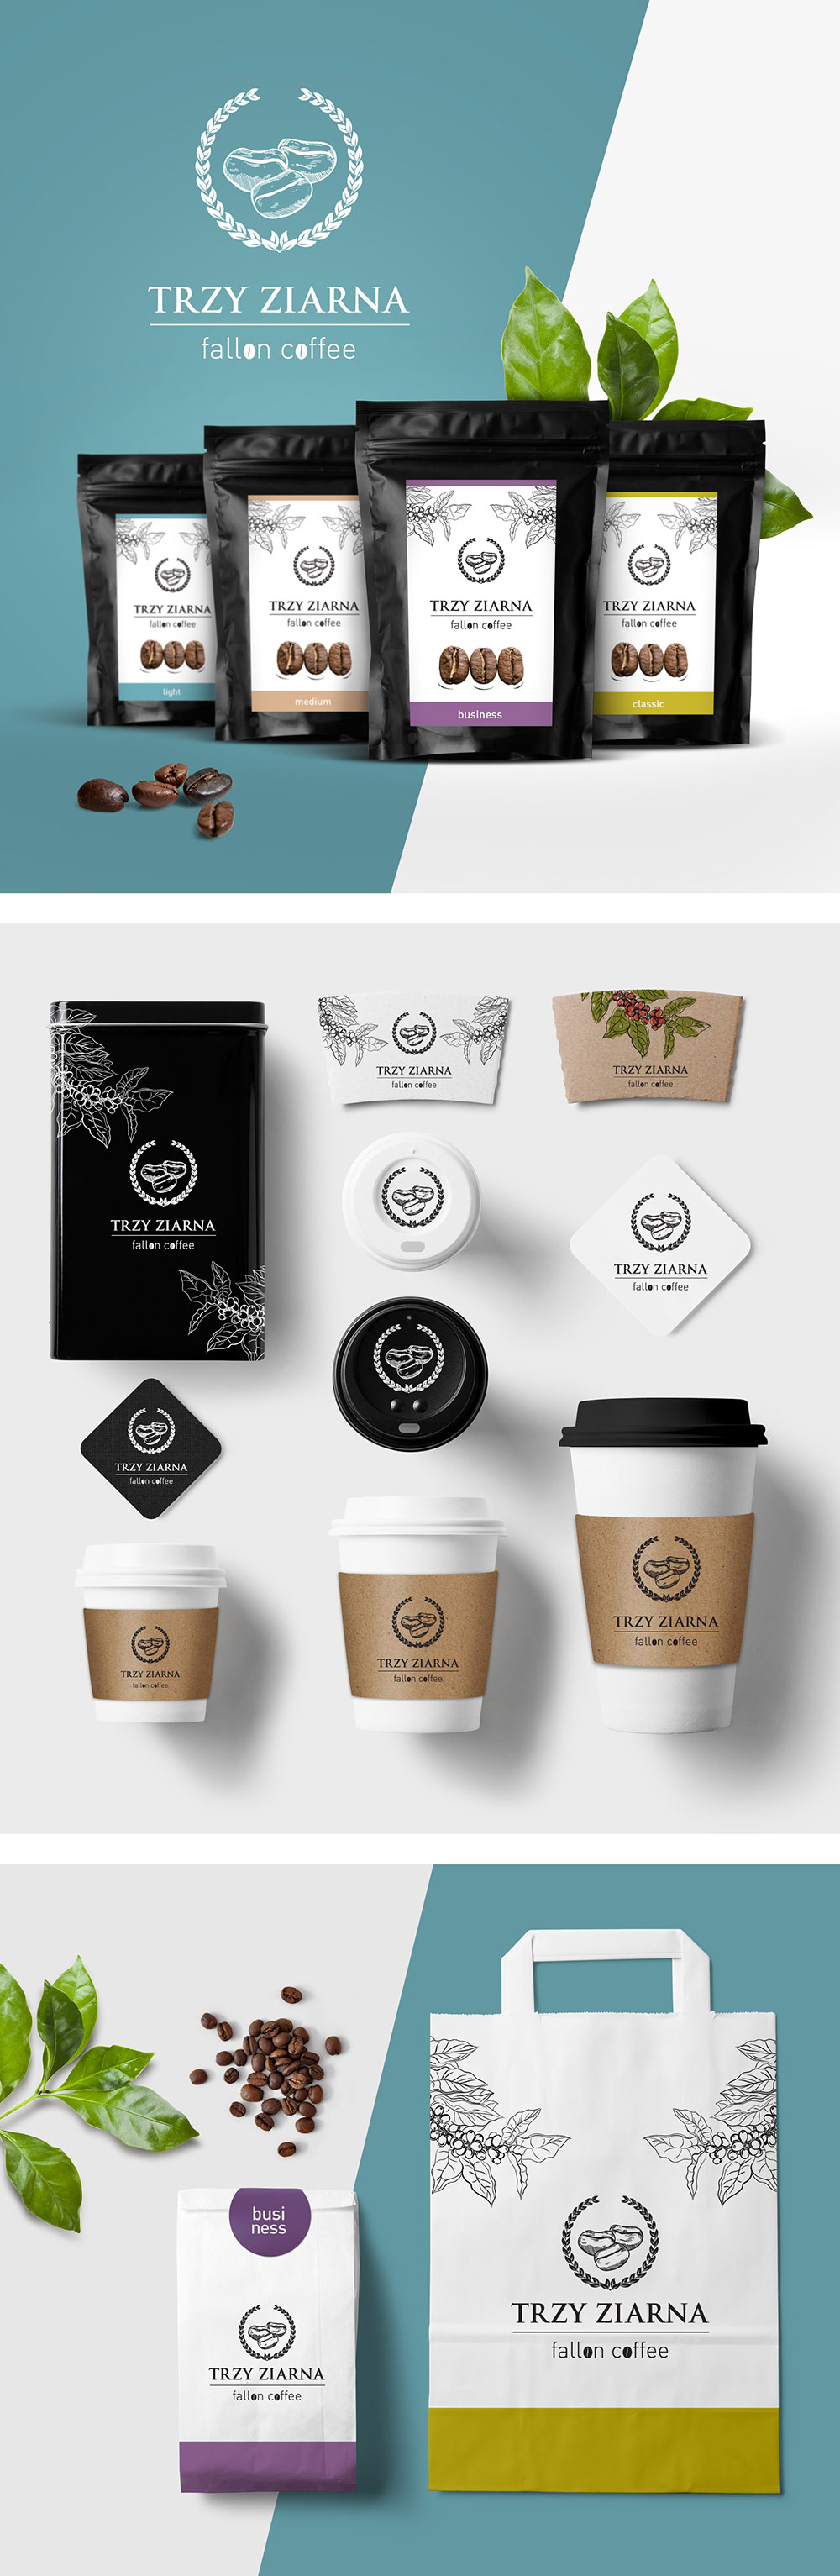 packaging_fallon_coffee